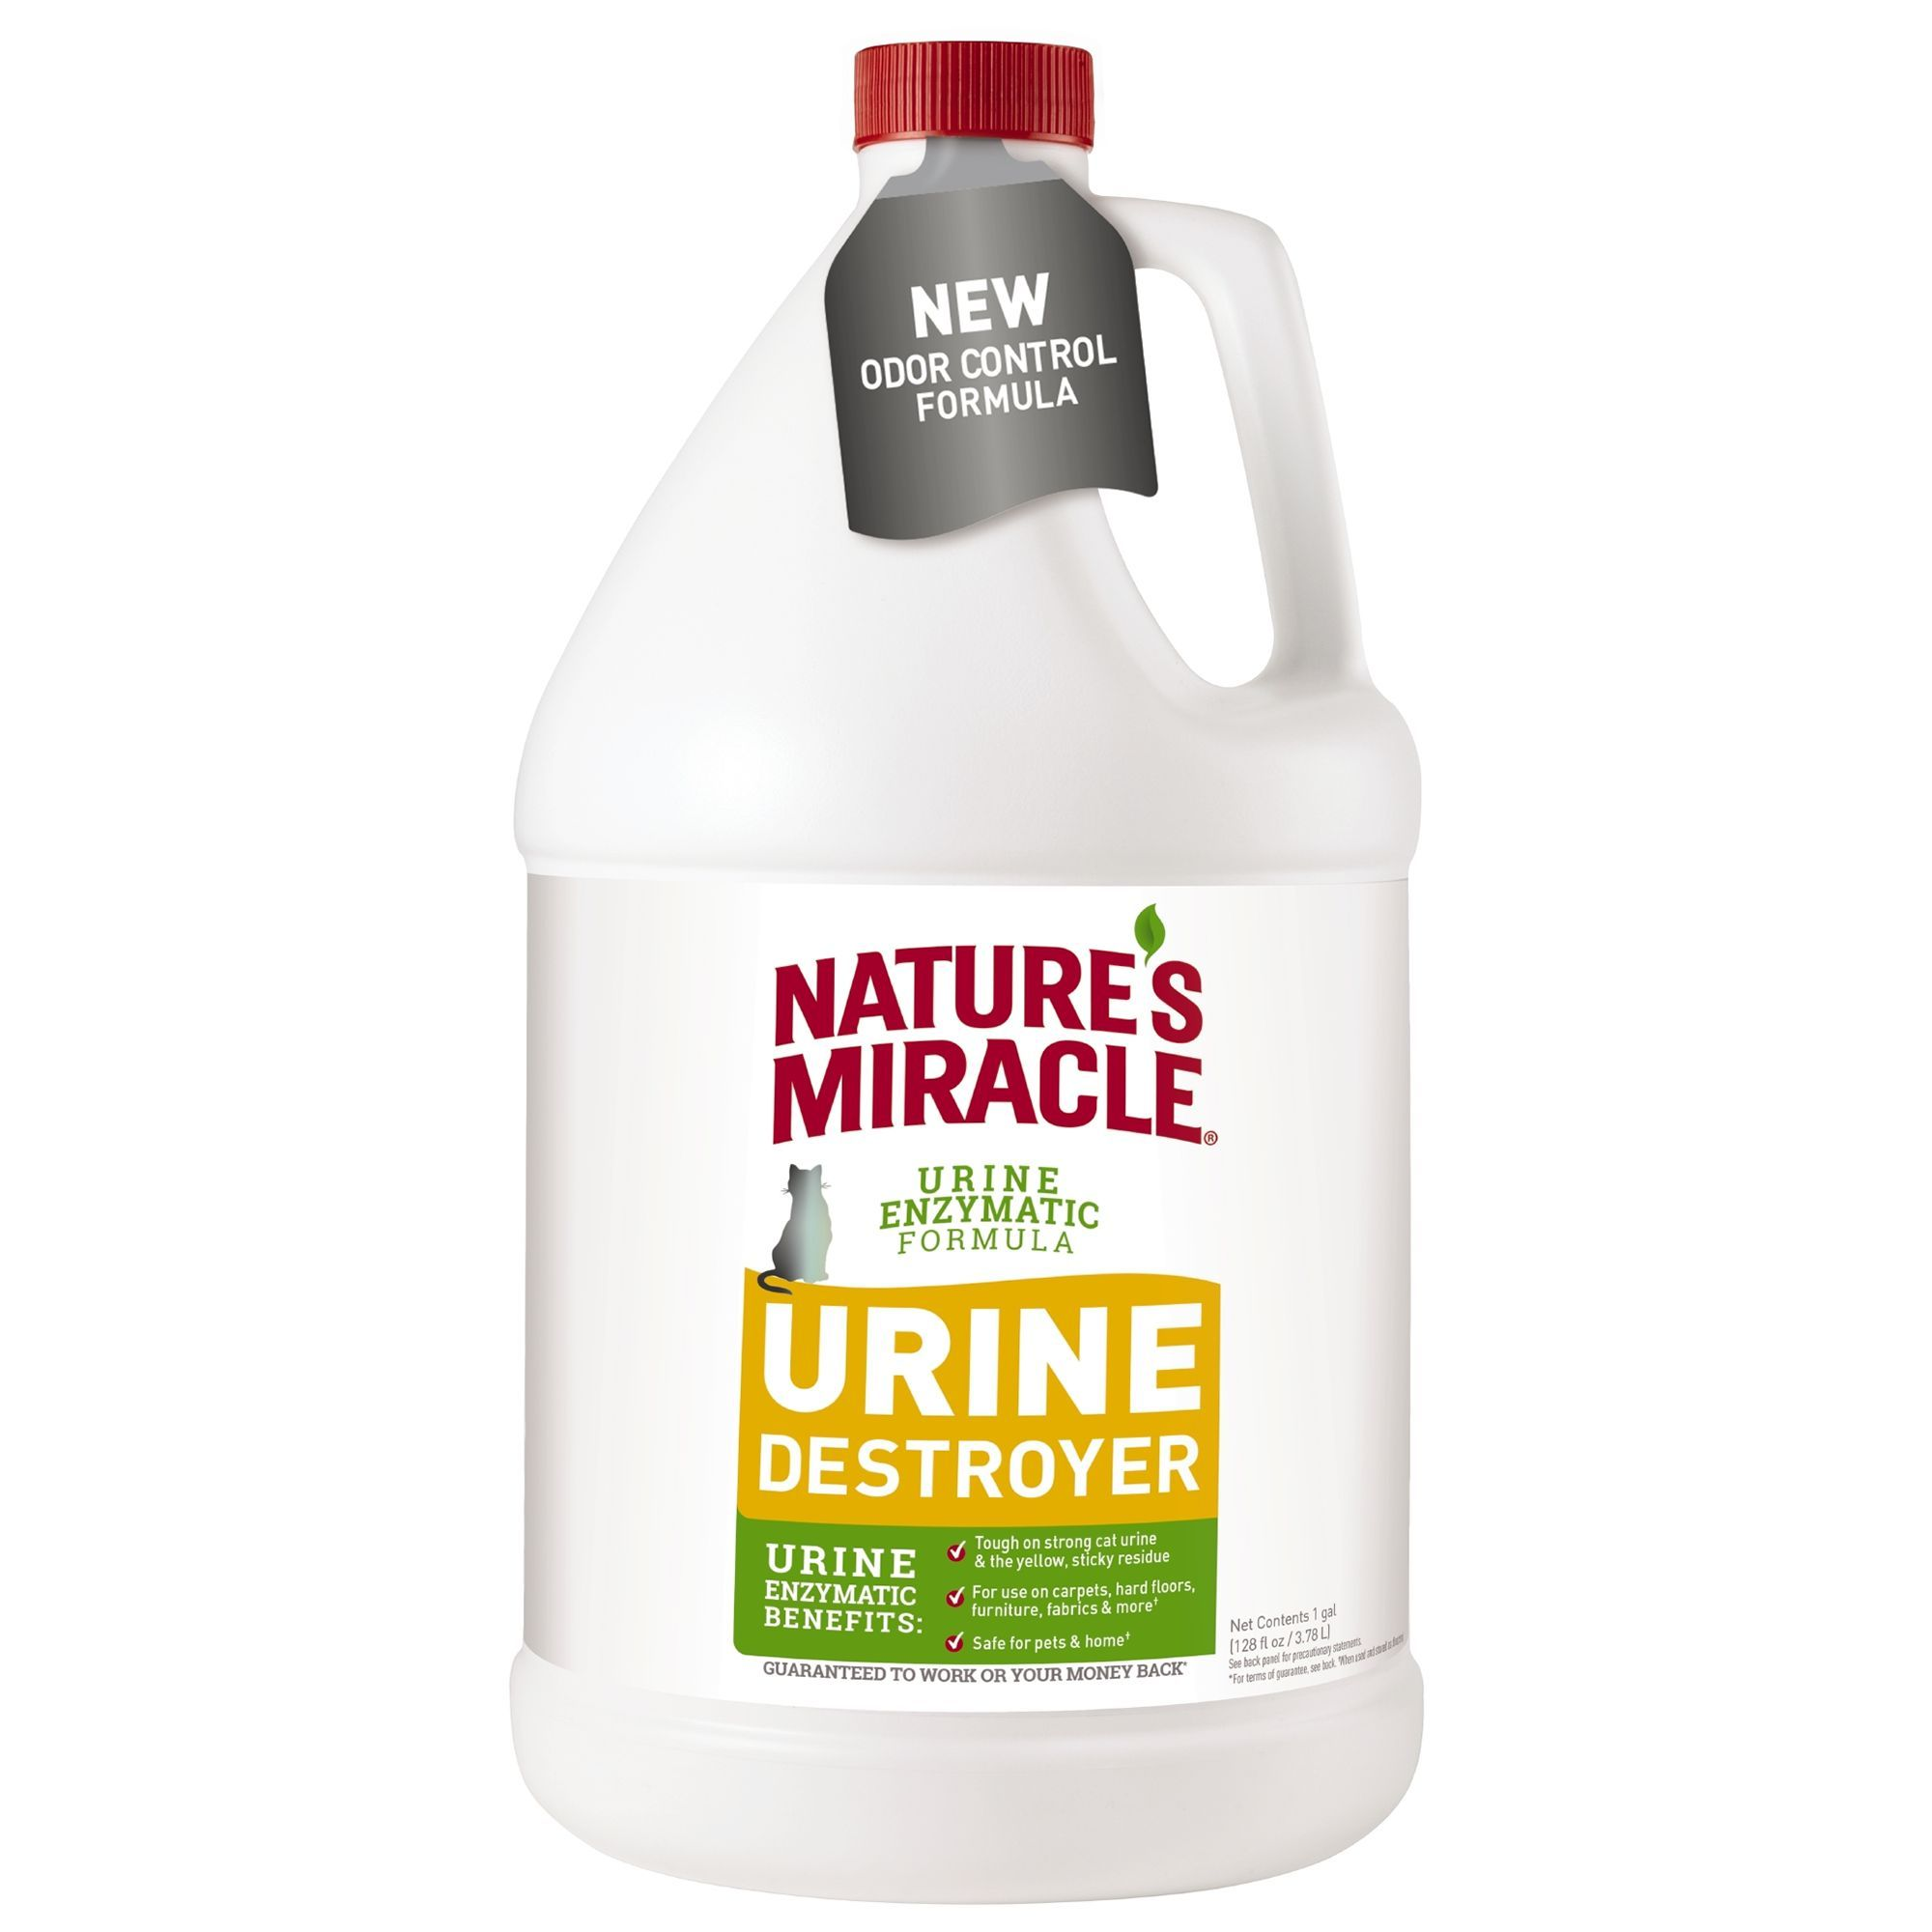 Nature's Miracle® Just for Cats Urine Destroyer in 2020